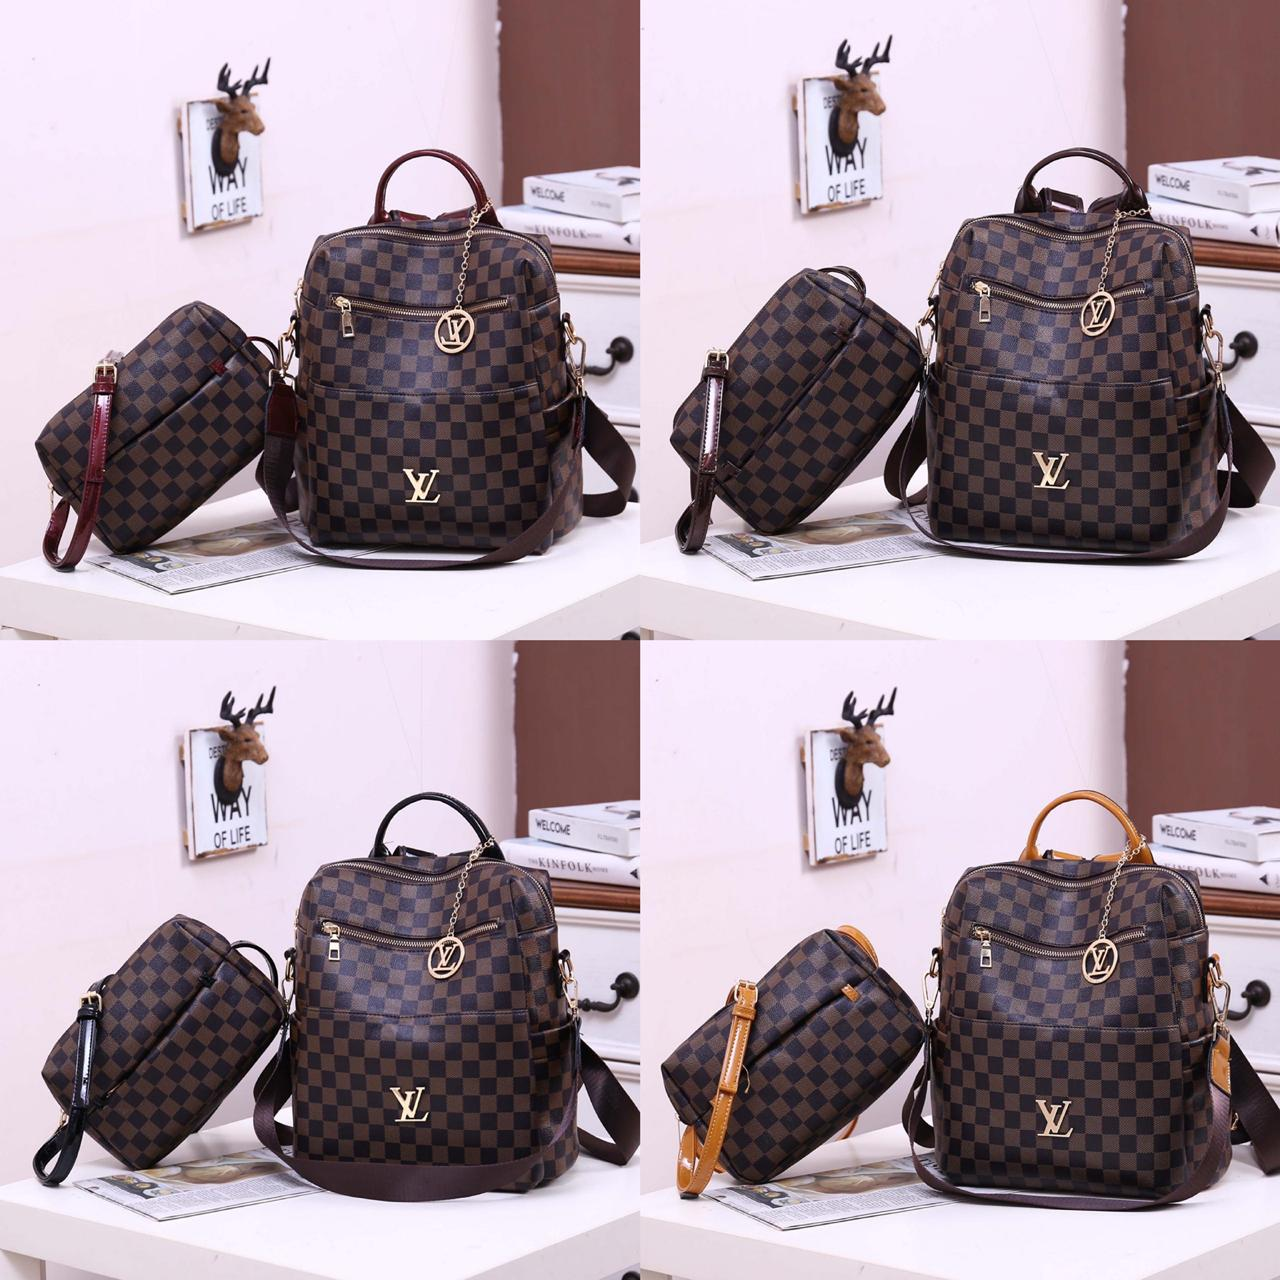 tas louis vuitton 2020 19120VP tas louis vuitton original terbaru,tas louis vuitton speedy,tas louis vuitton kulit matang